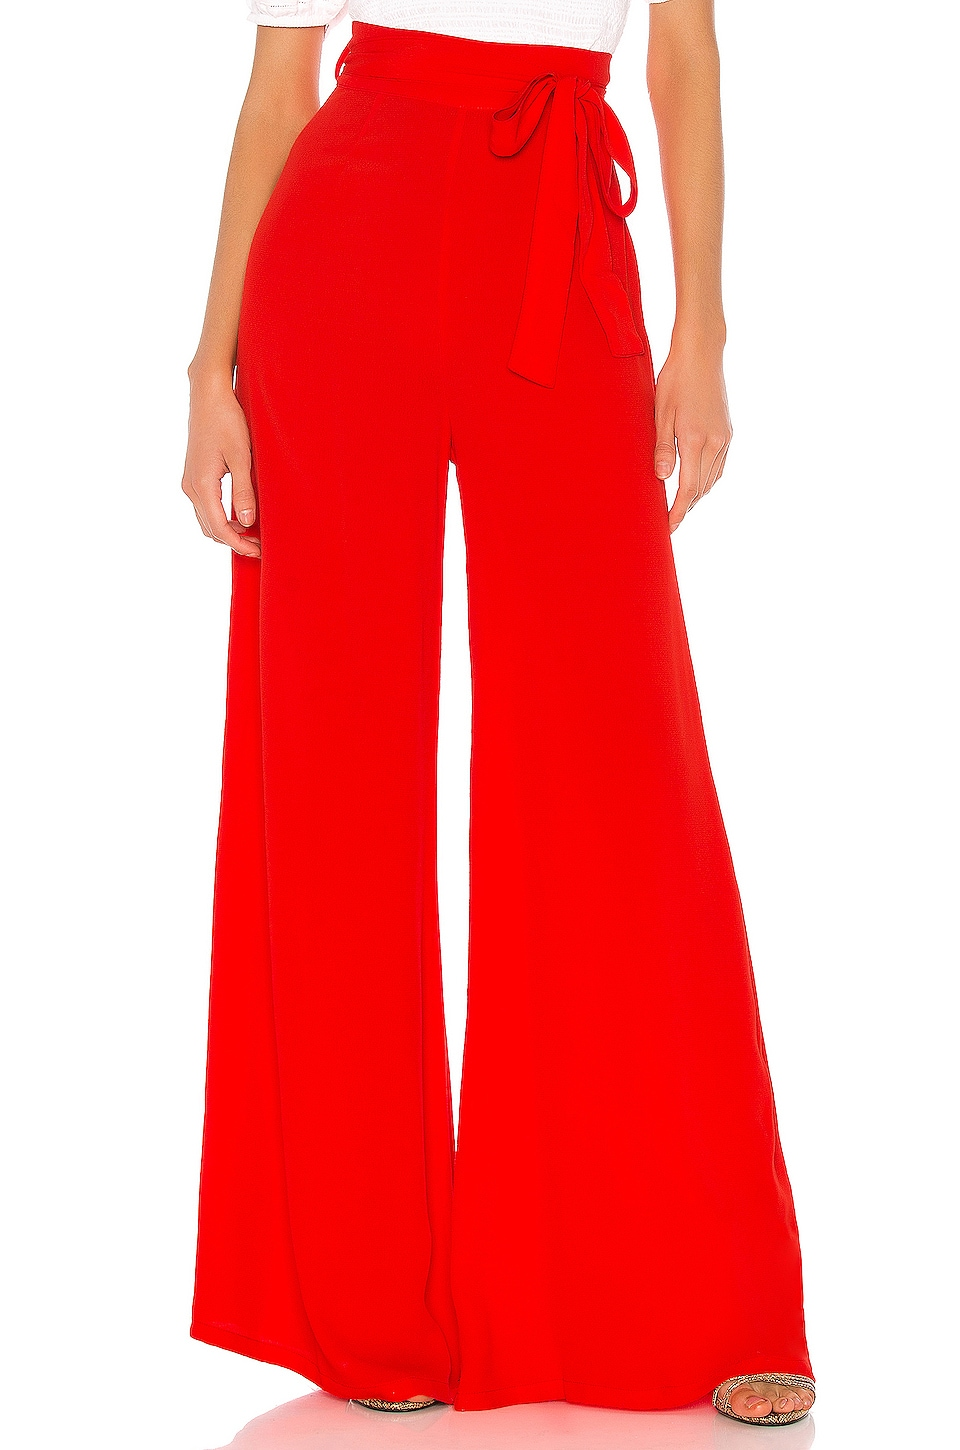 FLYNN SKYE Penelope Pant in Red Pepper